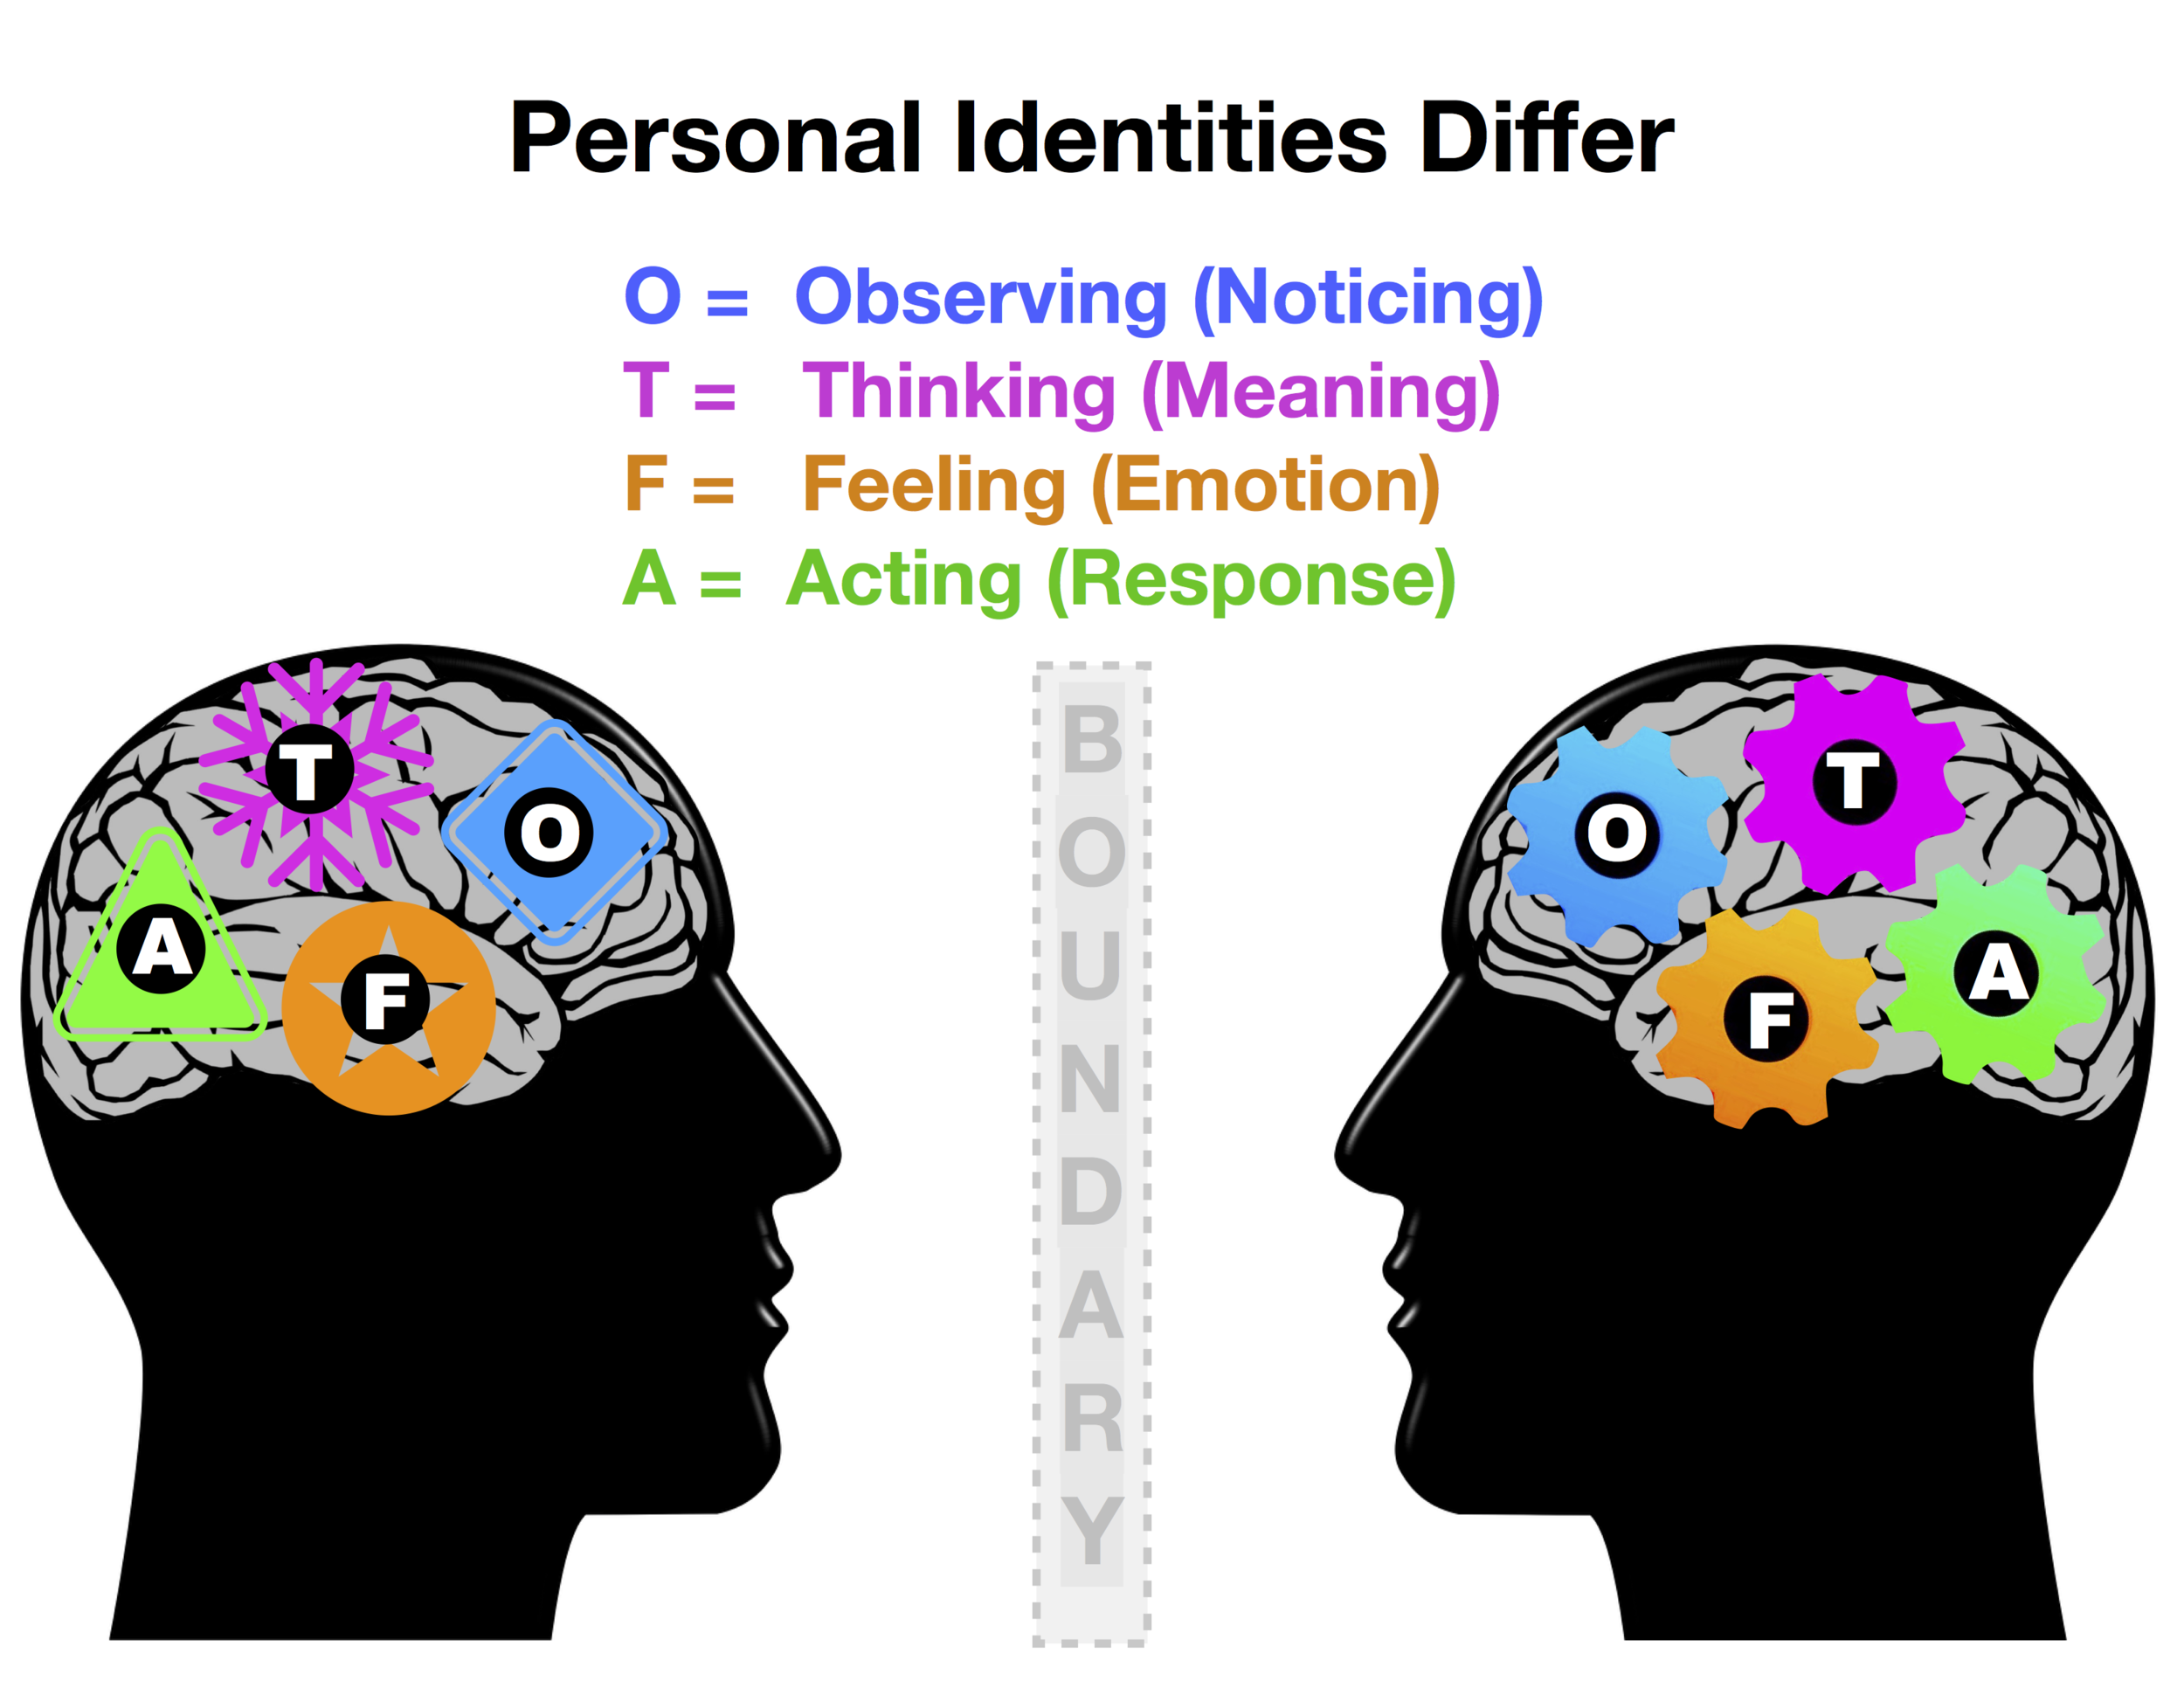 Personal Identities Differ